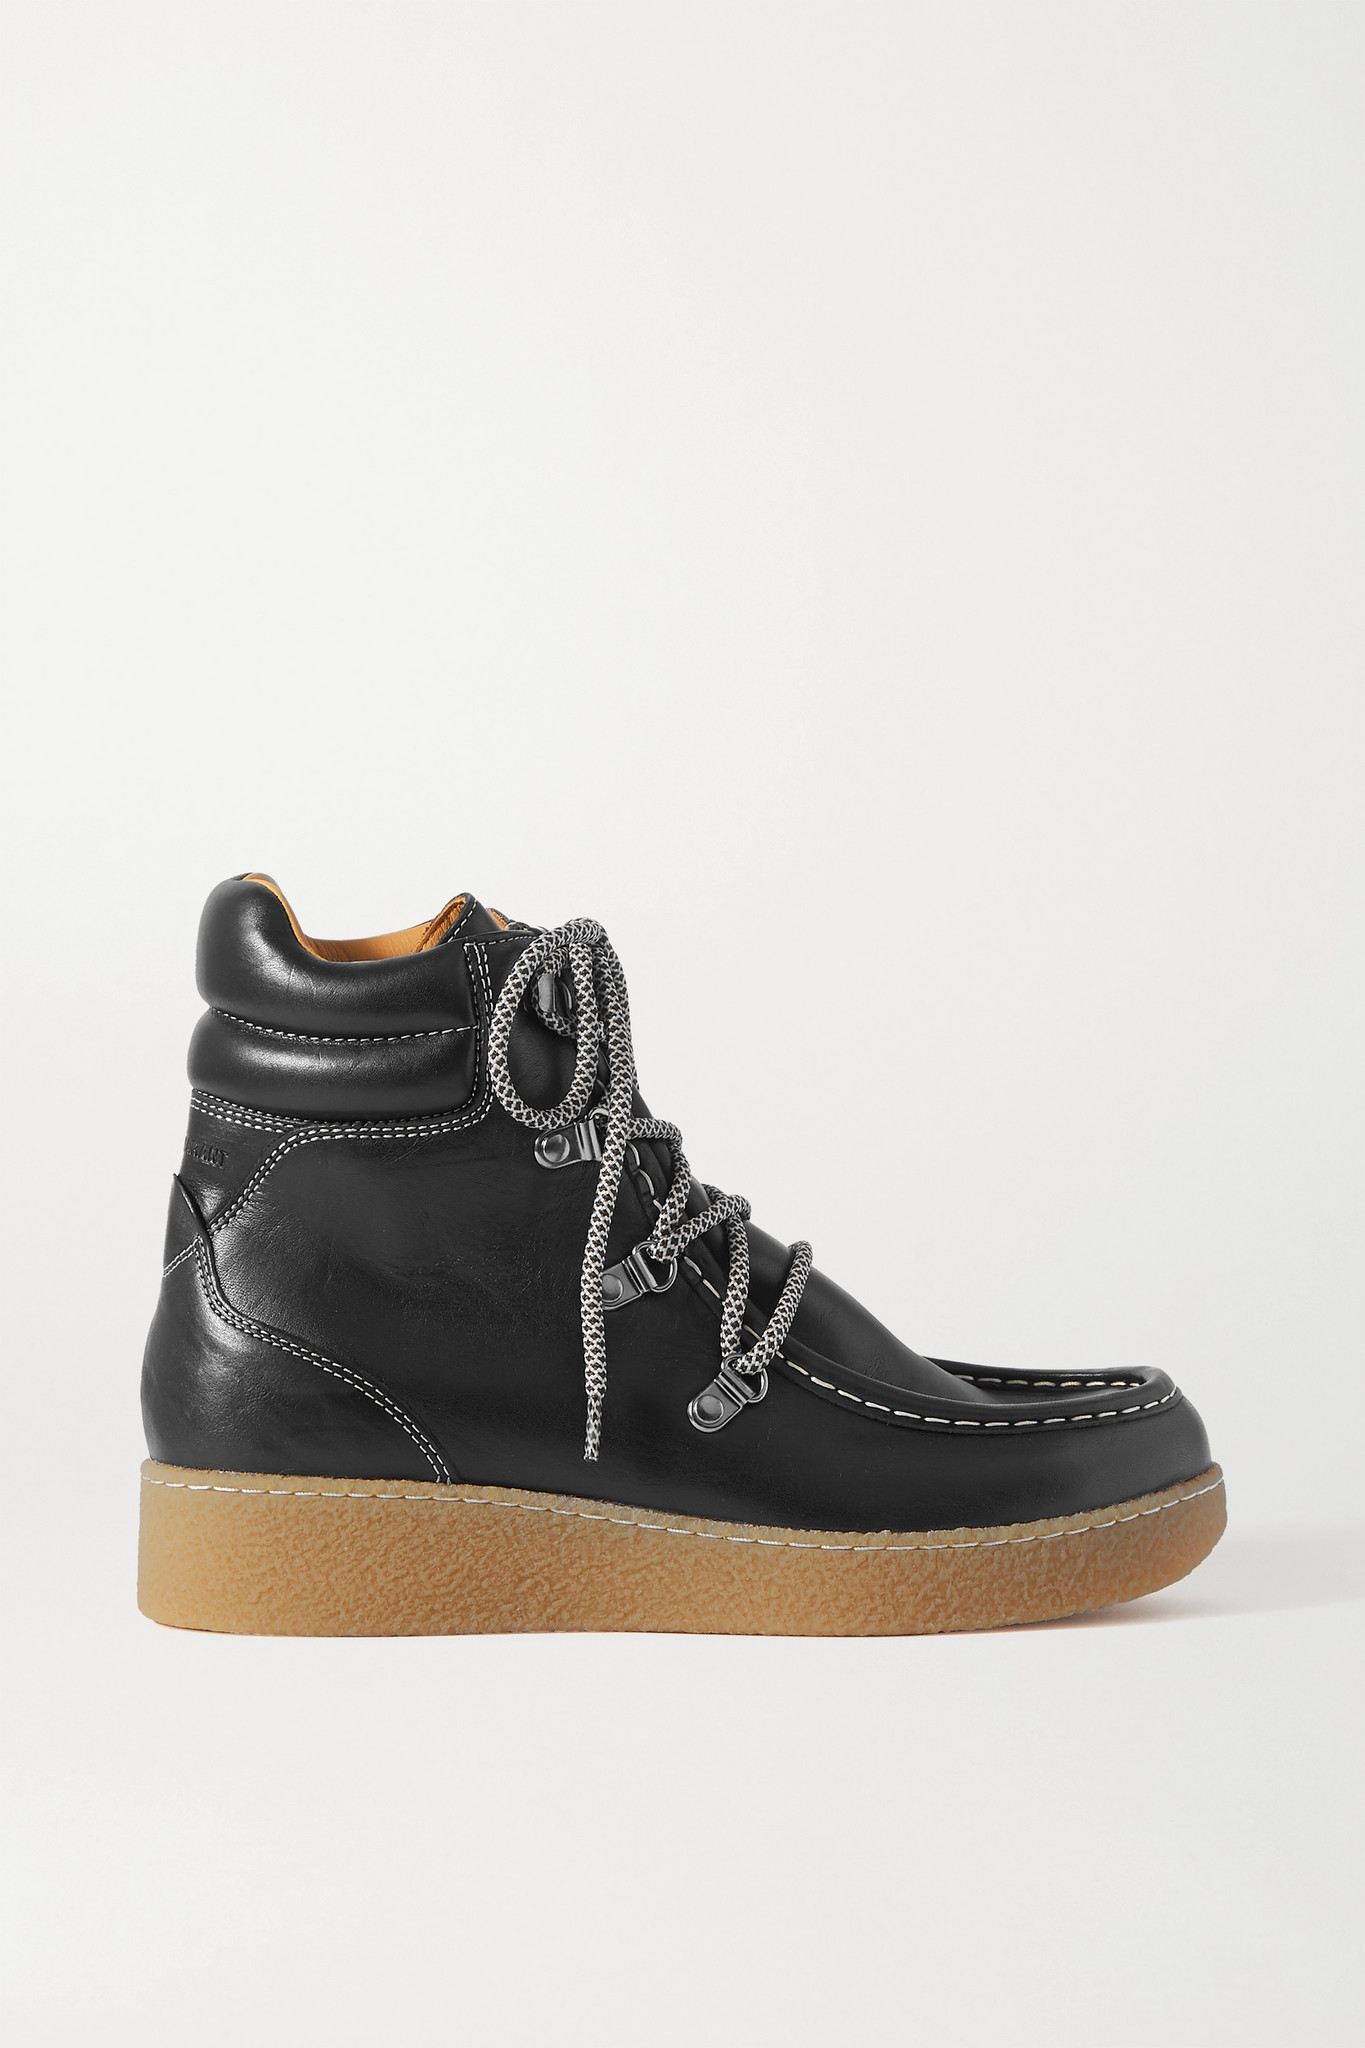 ISABEL MARANT - Alpica Leather Ankle Boots - Black - FR36